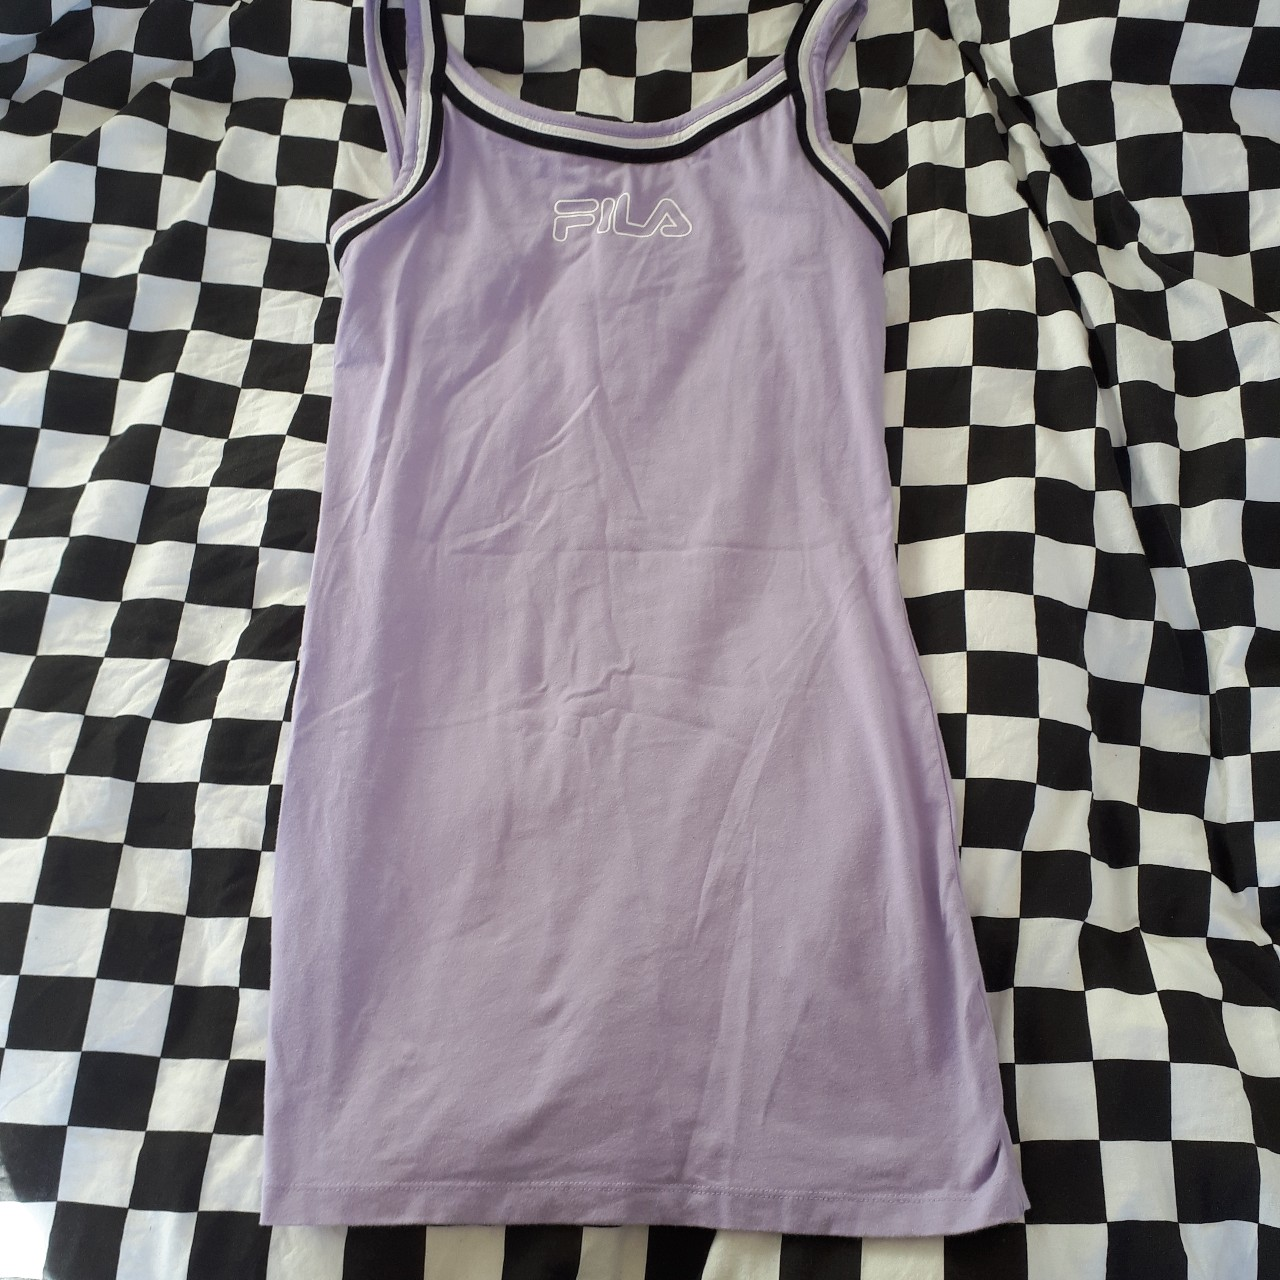 Lilac Fila dress from urban outfitters